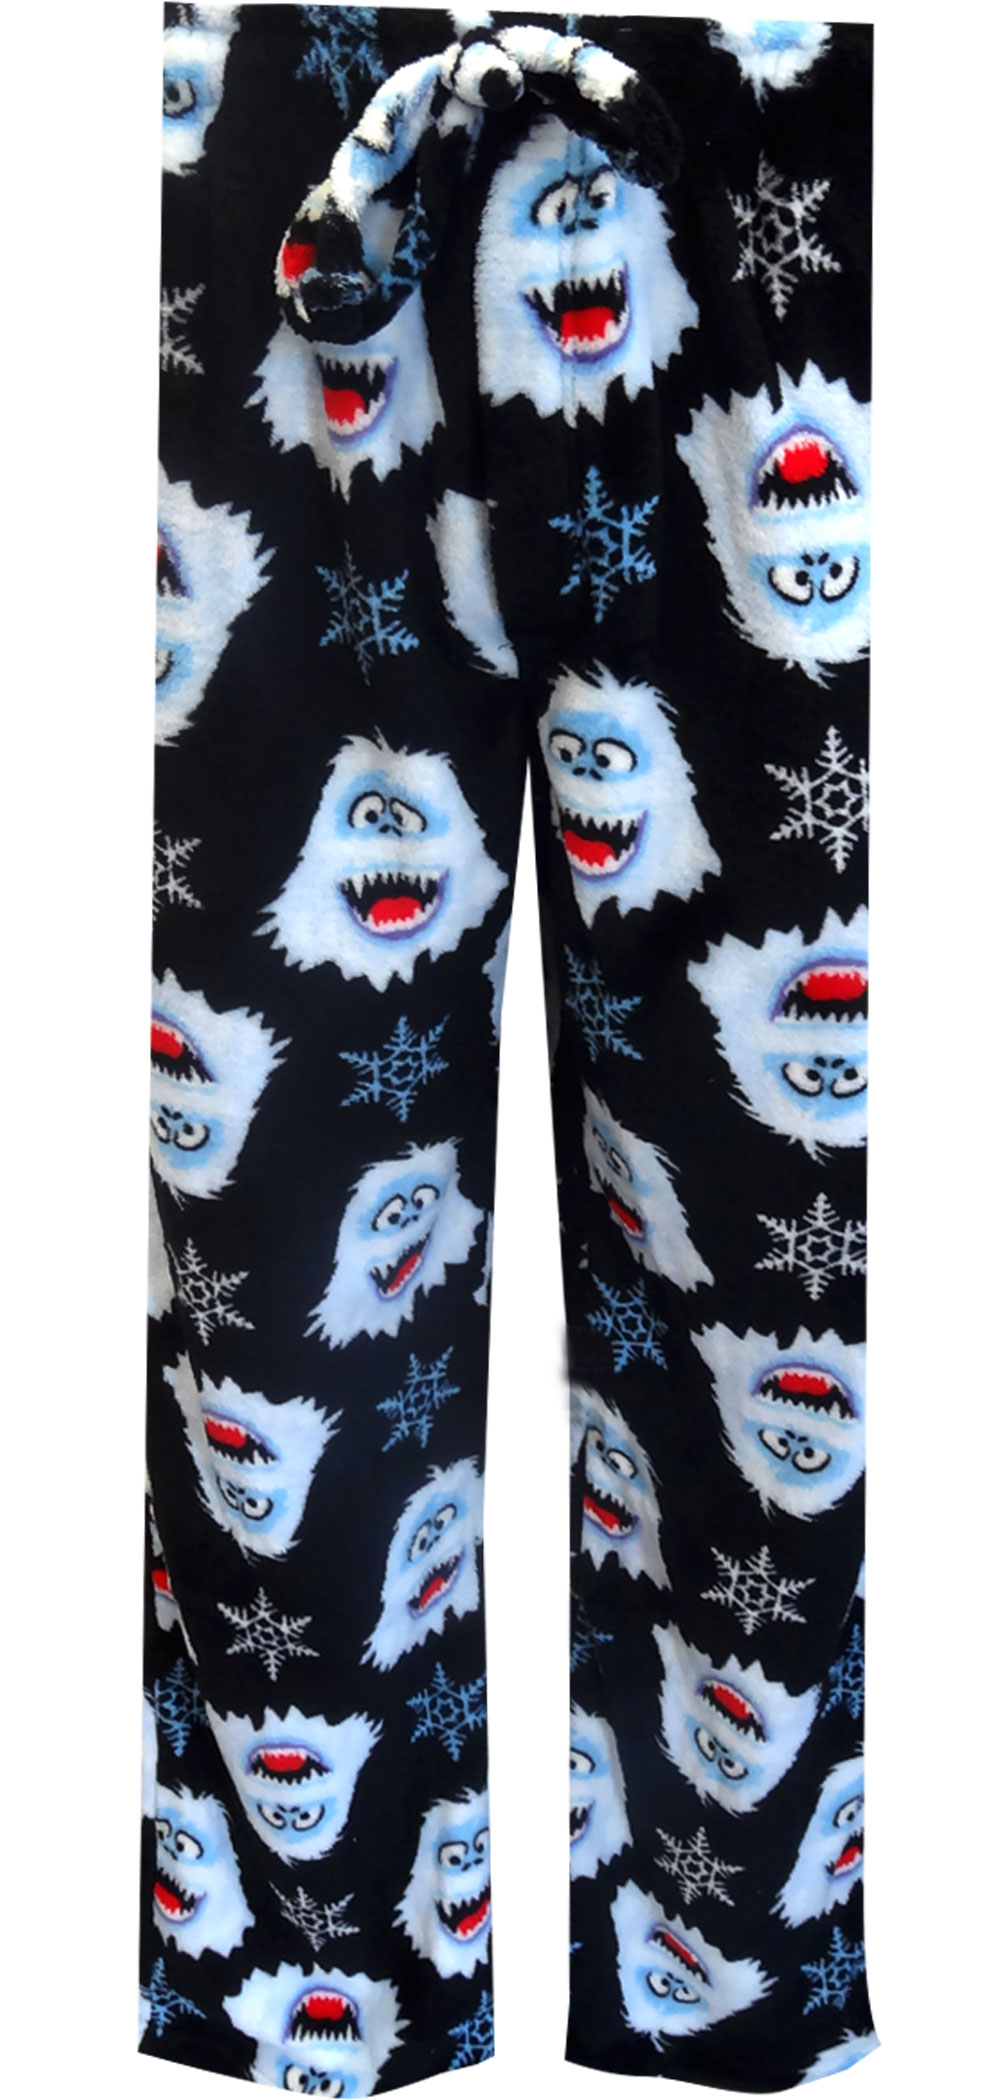 Image of Fleece Rudolph The Red Nosed Reindeer Snowflake Bumble Pajama Pants for Men